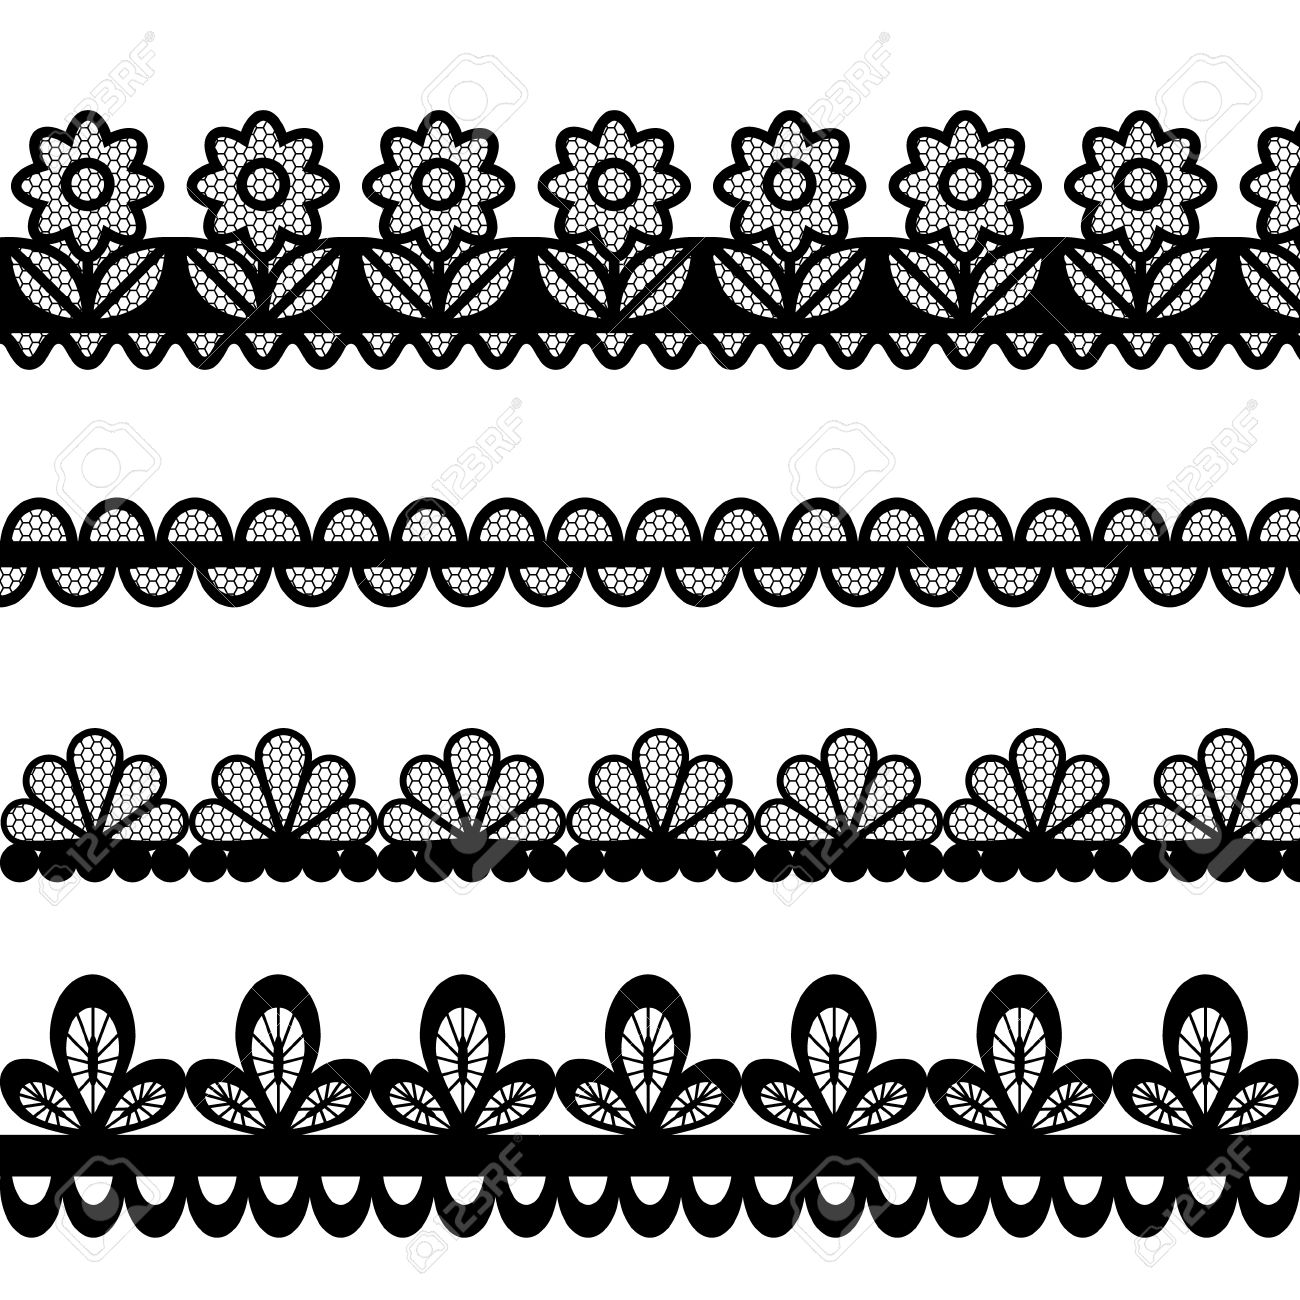 set of lace vector borders royalty free cliparts vectors and stock rh 123rf com lace vector ai lace vector file